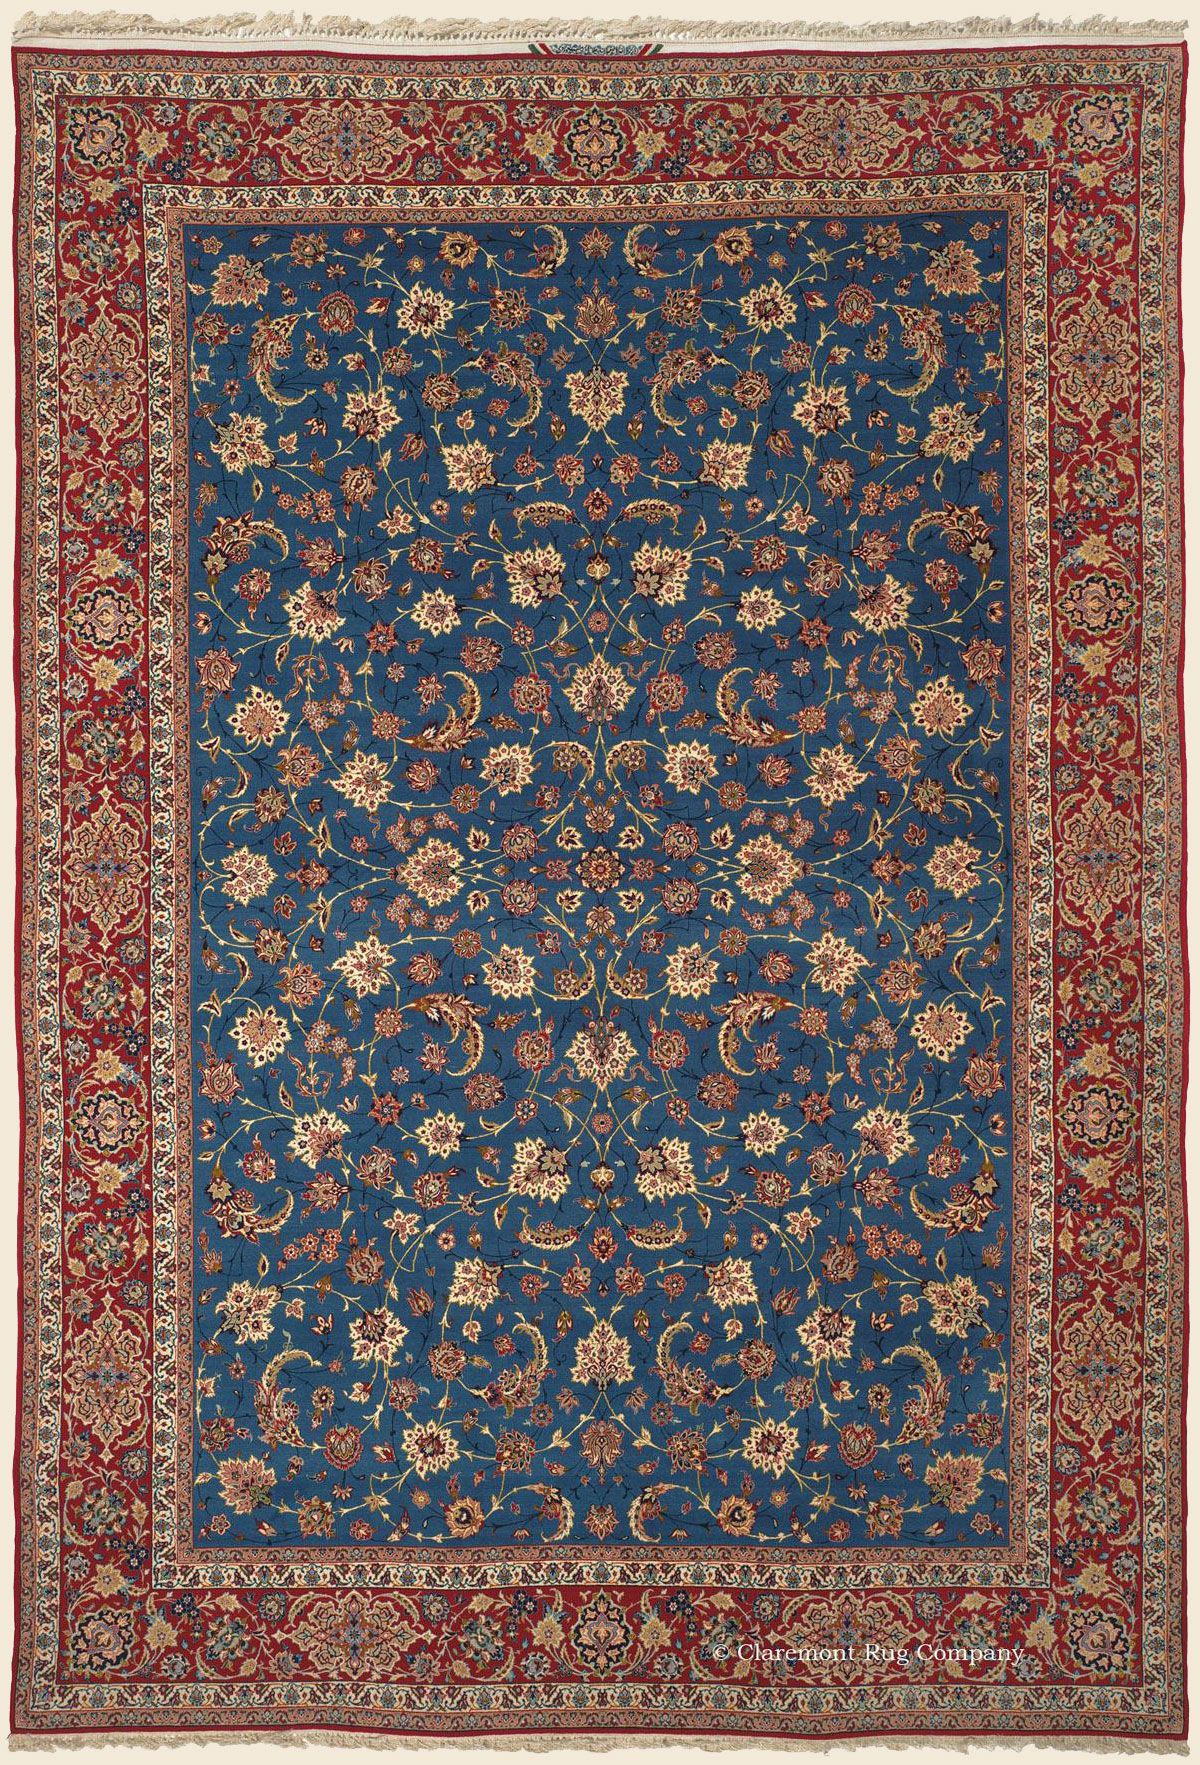 Isfahan 8 6 X 12 7 Circa 1950 Price 21 000 Central Persian Antique Rug Claremont Rug Company Persian Carpet Stair Runner Carpet Rugs On Carpet